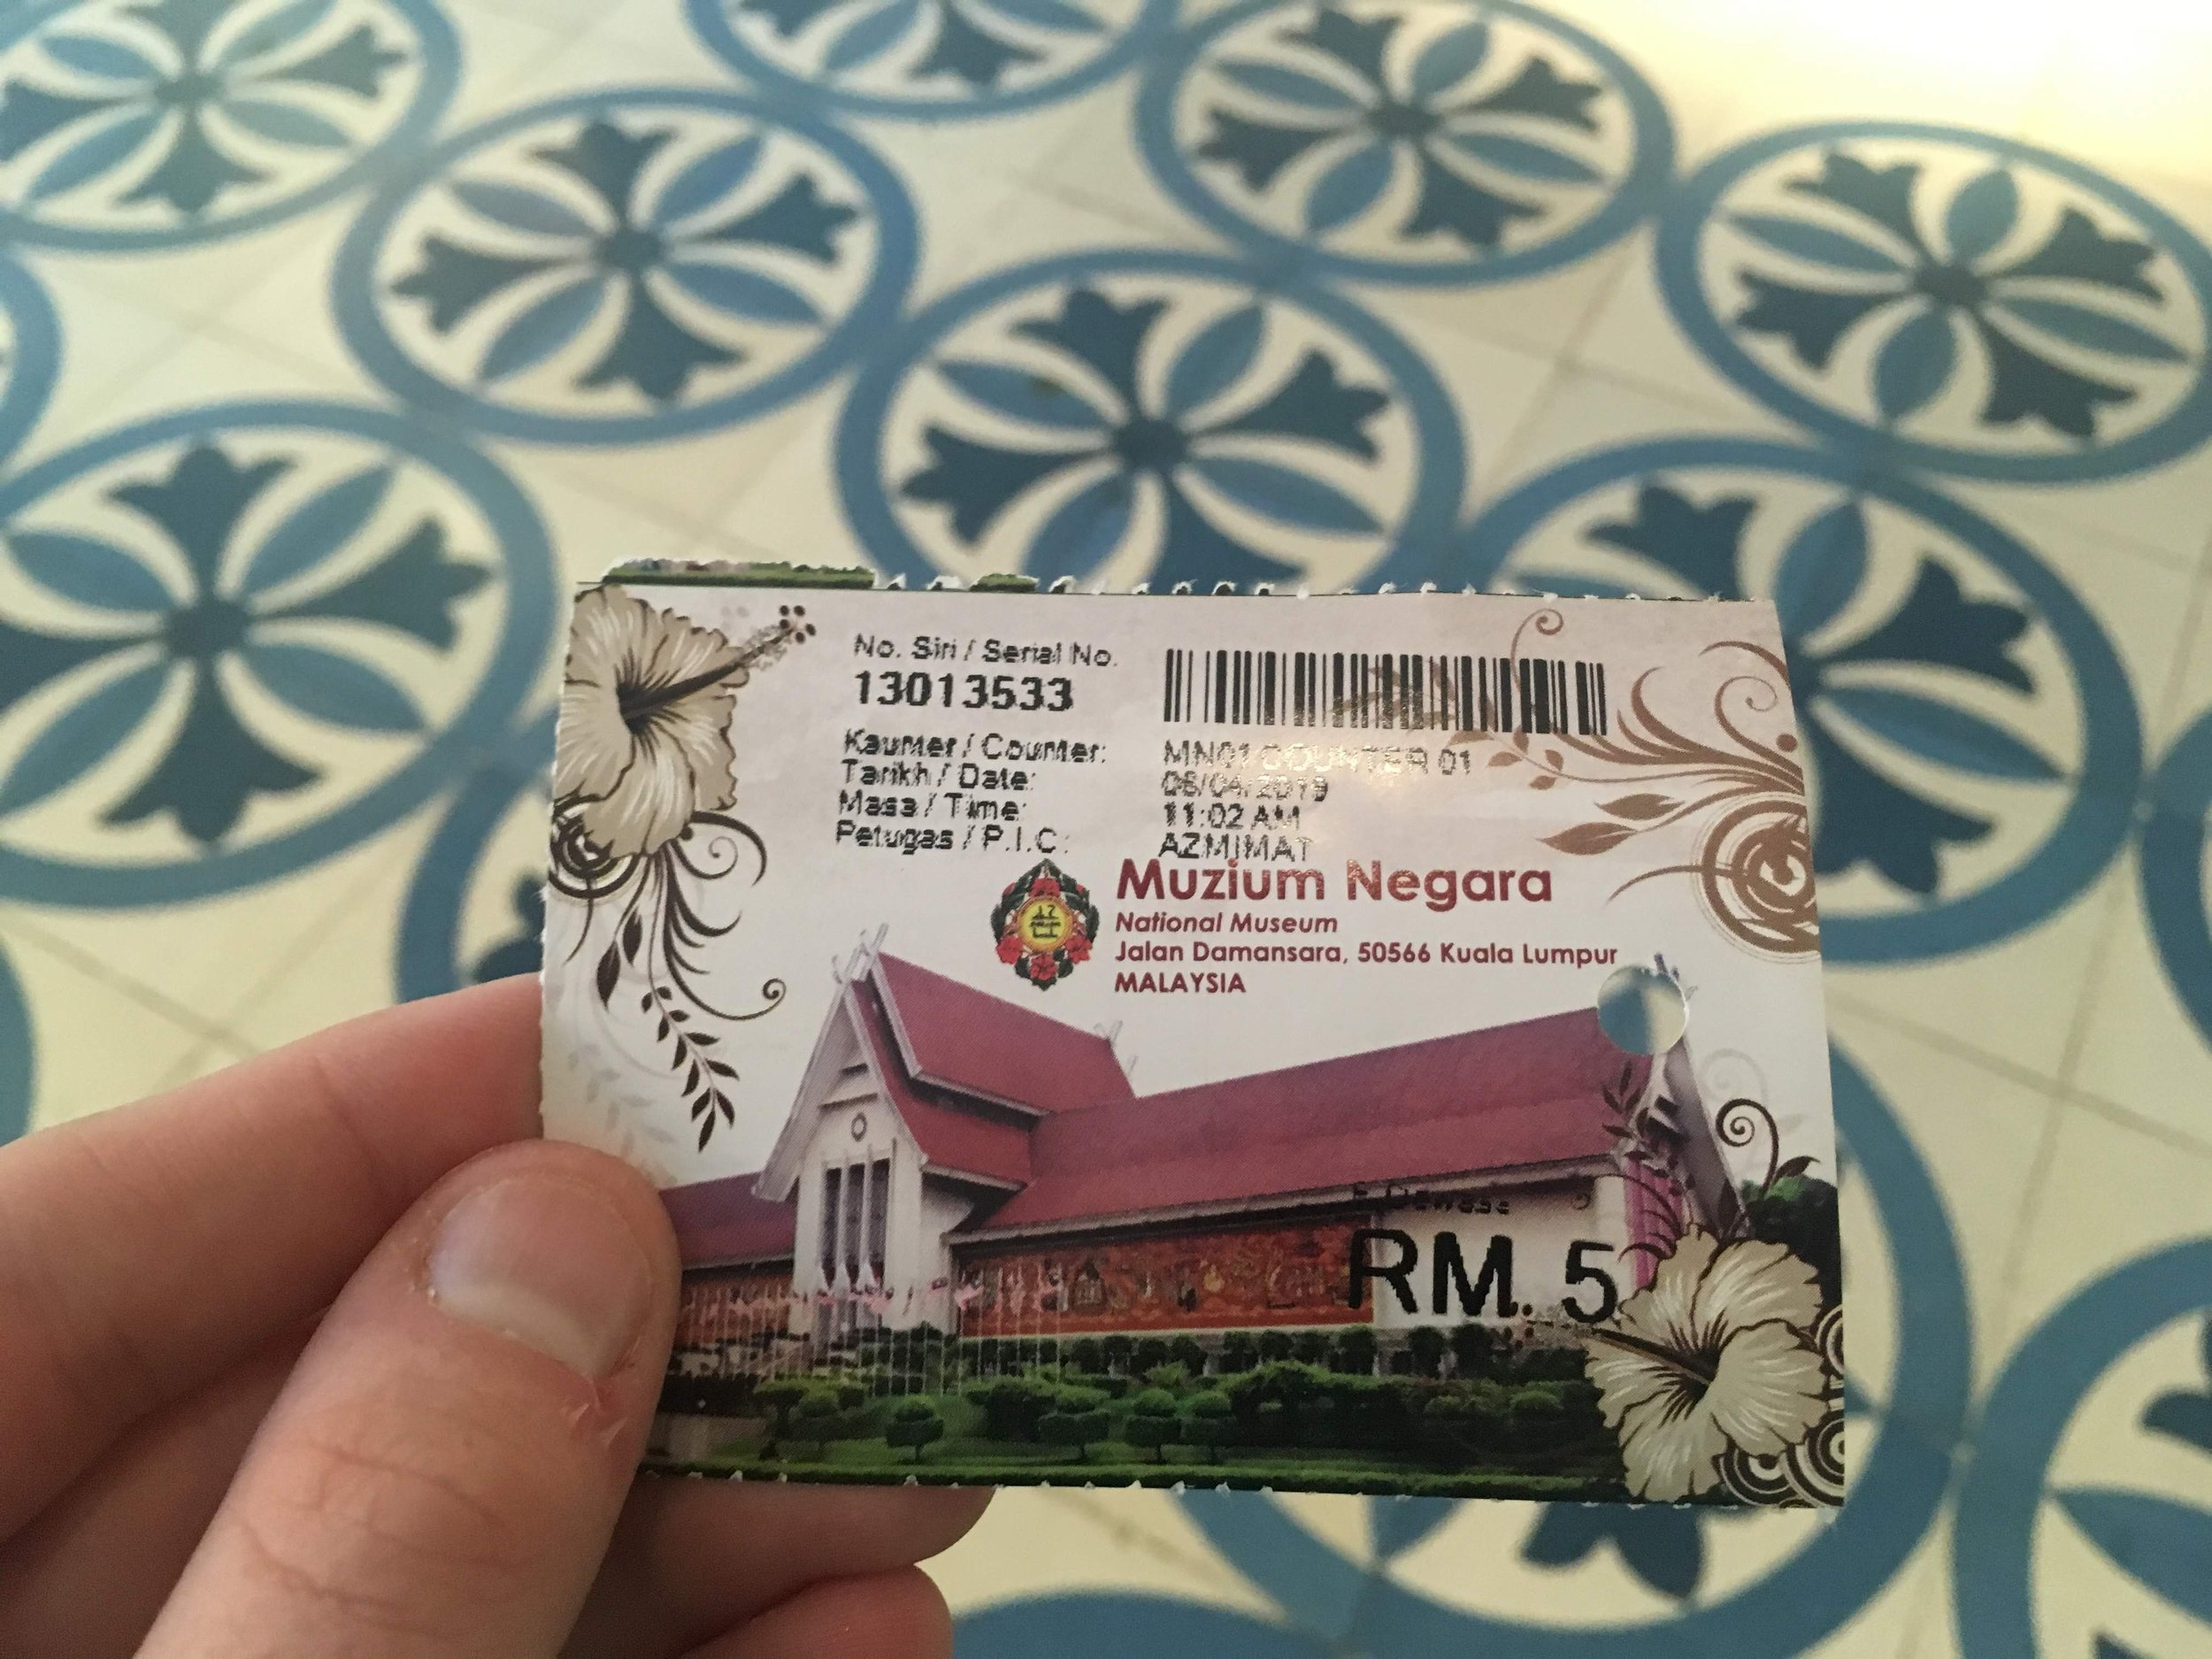 a ticket to the National Museum of Malaysia costs just 5 ringgit